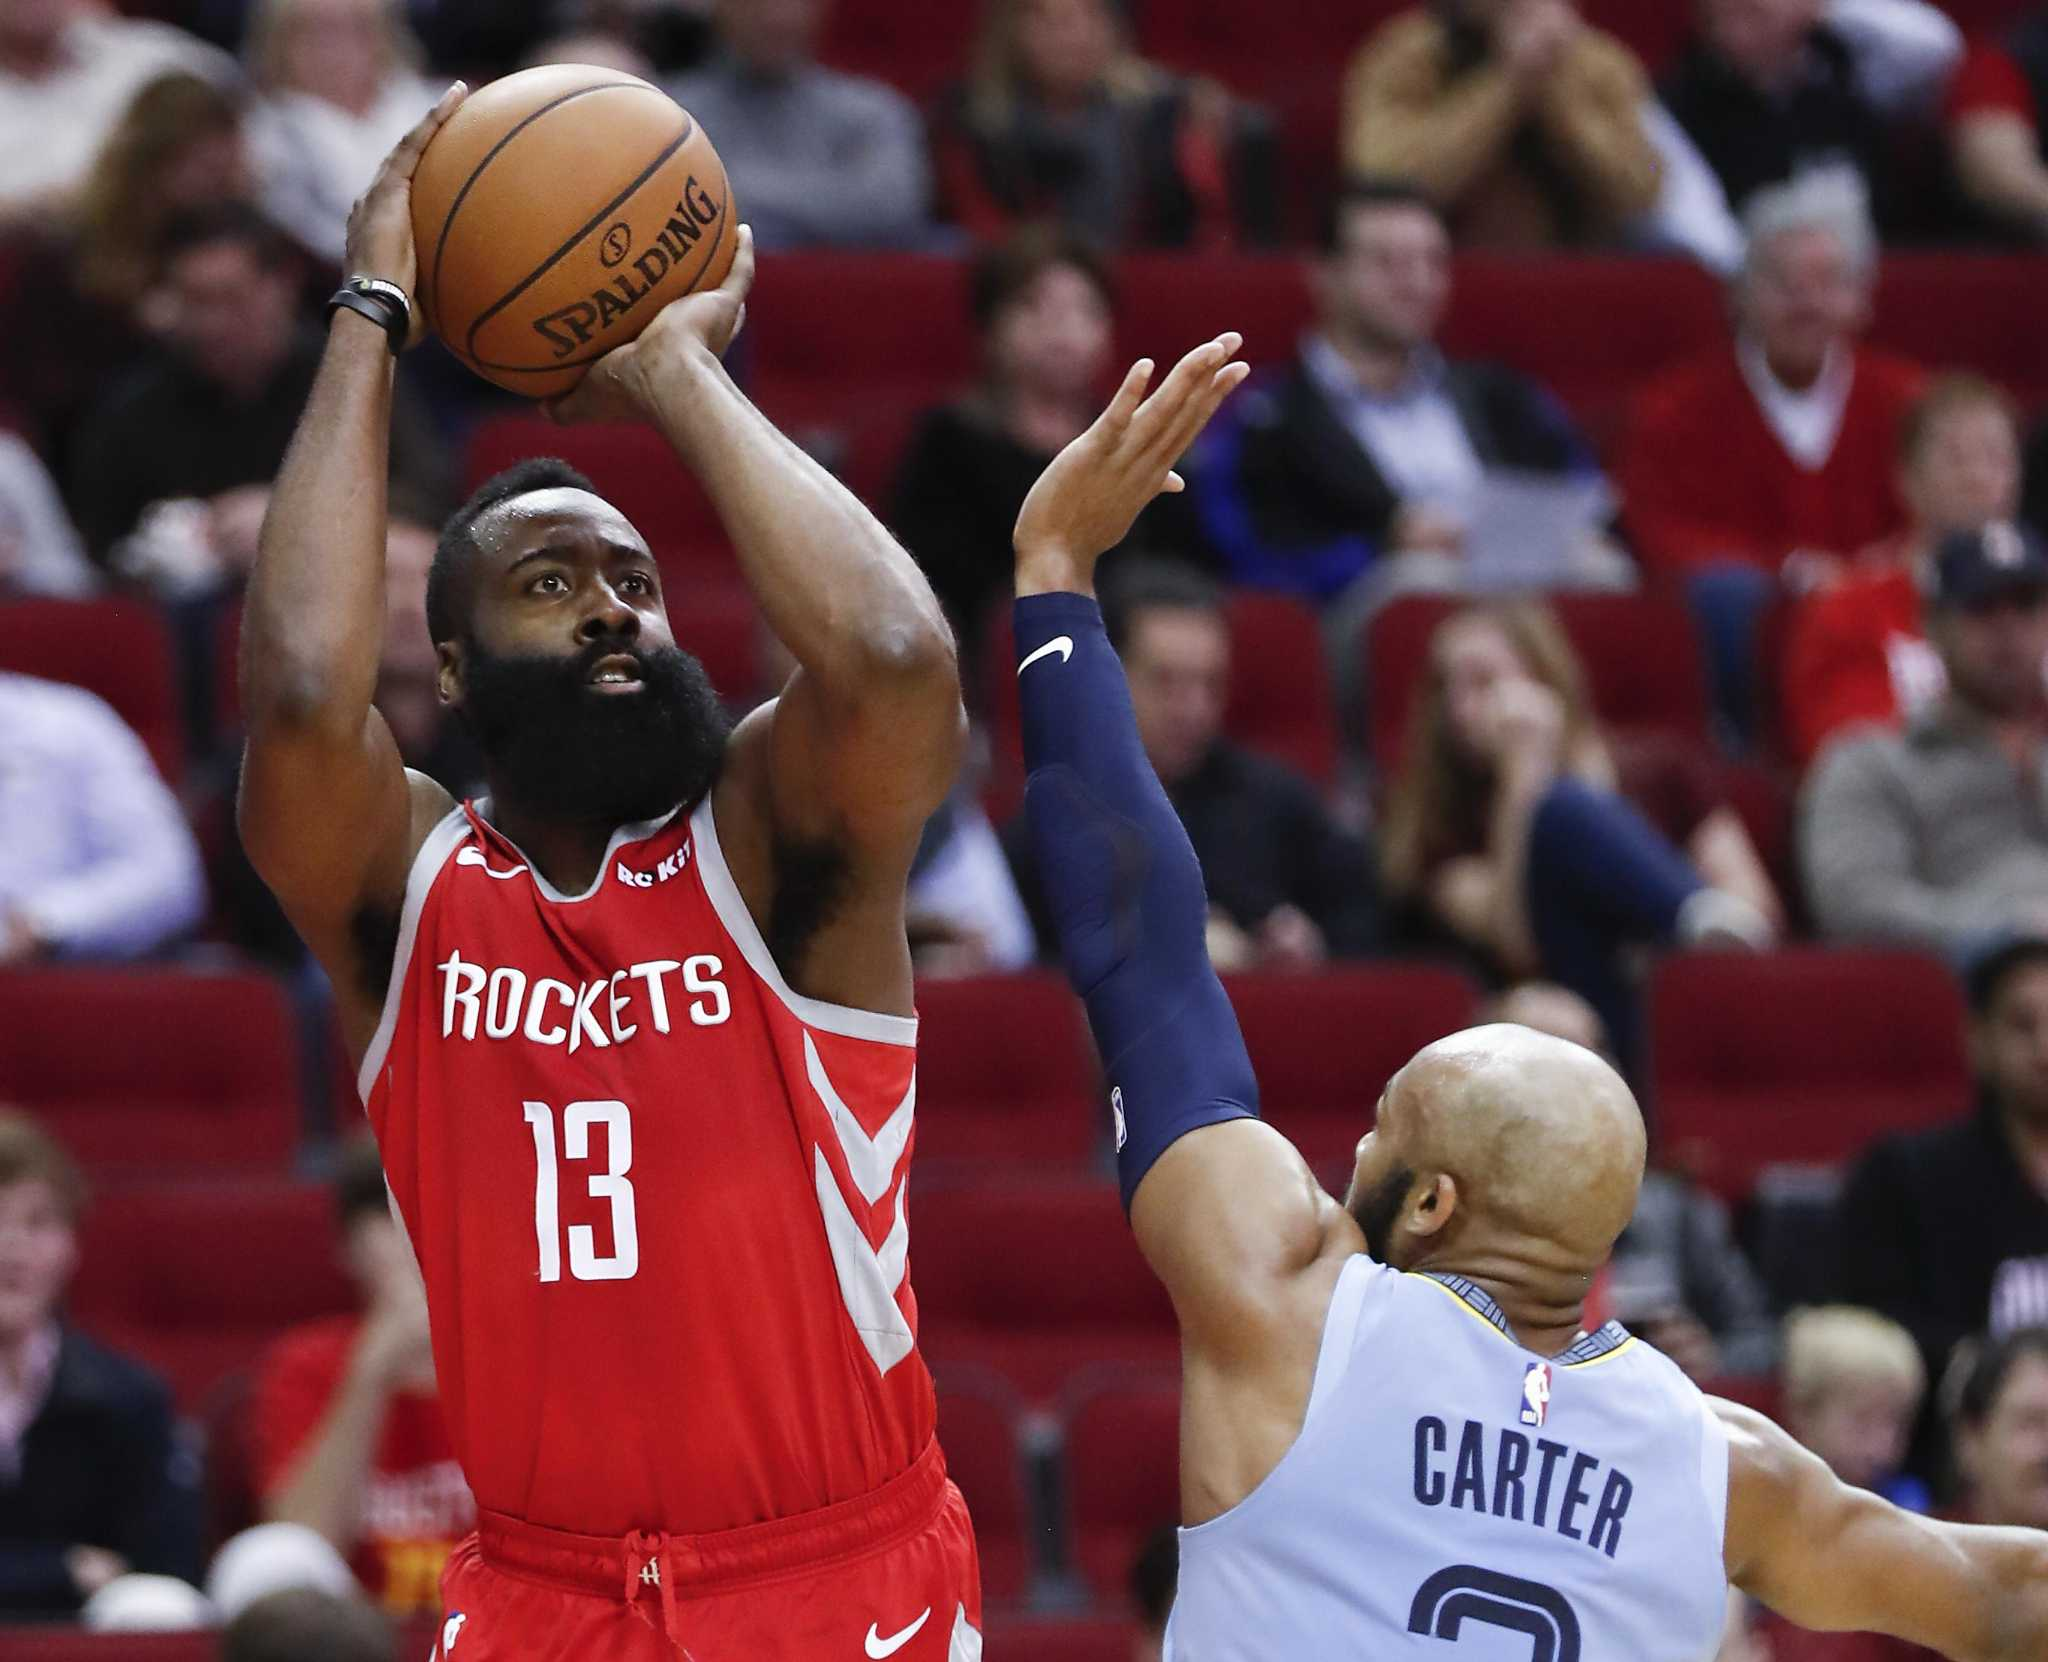 a2c50d684e30 James Harden   I want my name up there  - HoustonChronicle.com